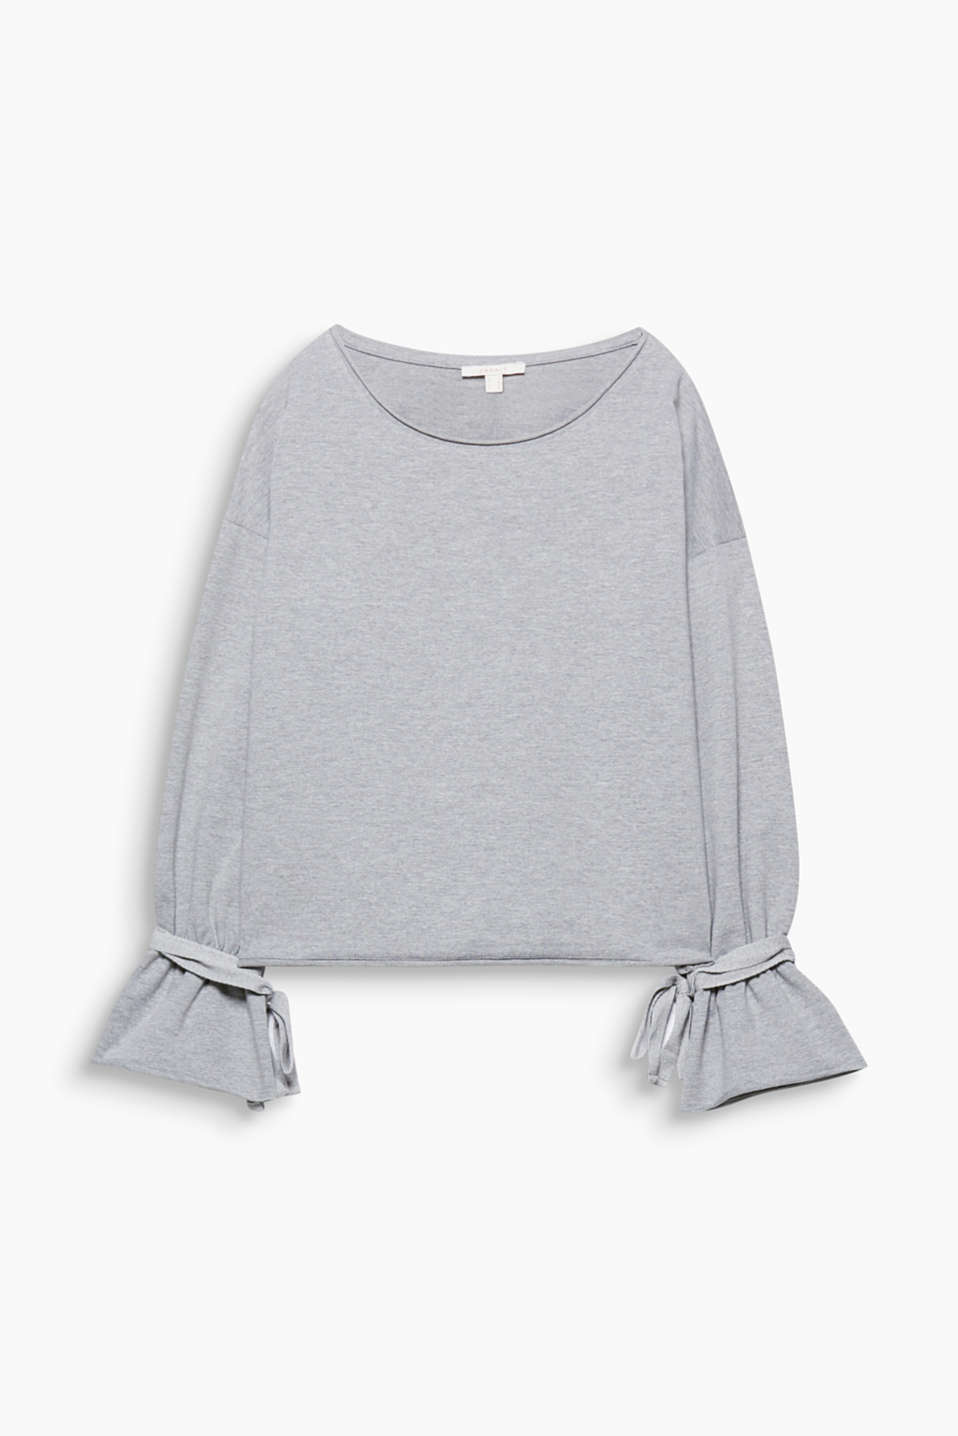 The flounces on the sleeve ends and the wide tie-up bows make this sweatshirt a cool, eye-catching piece.